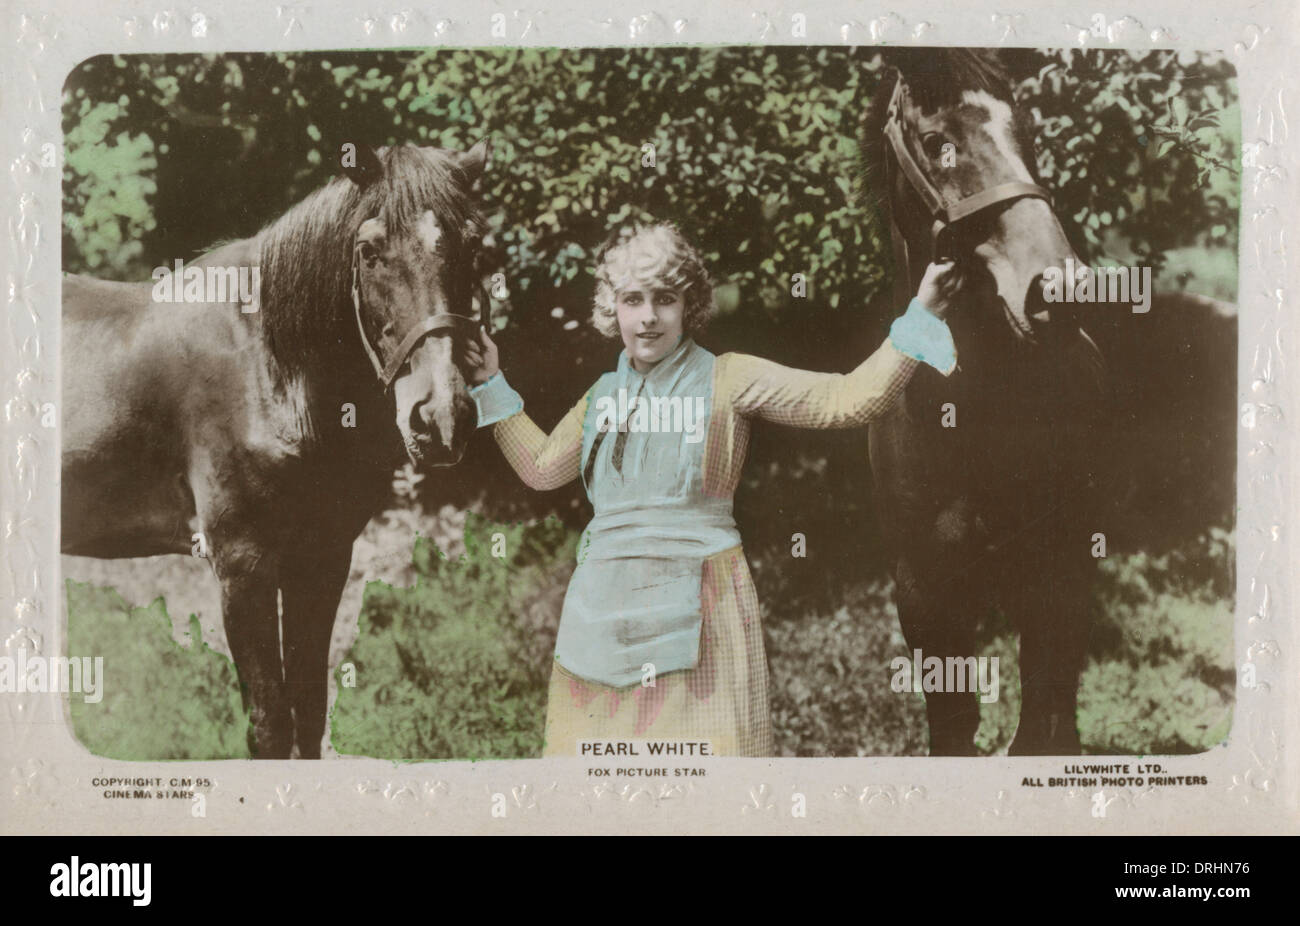 Pearl Fay White - American film actress and stunt star - Stock Image